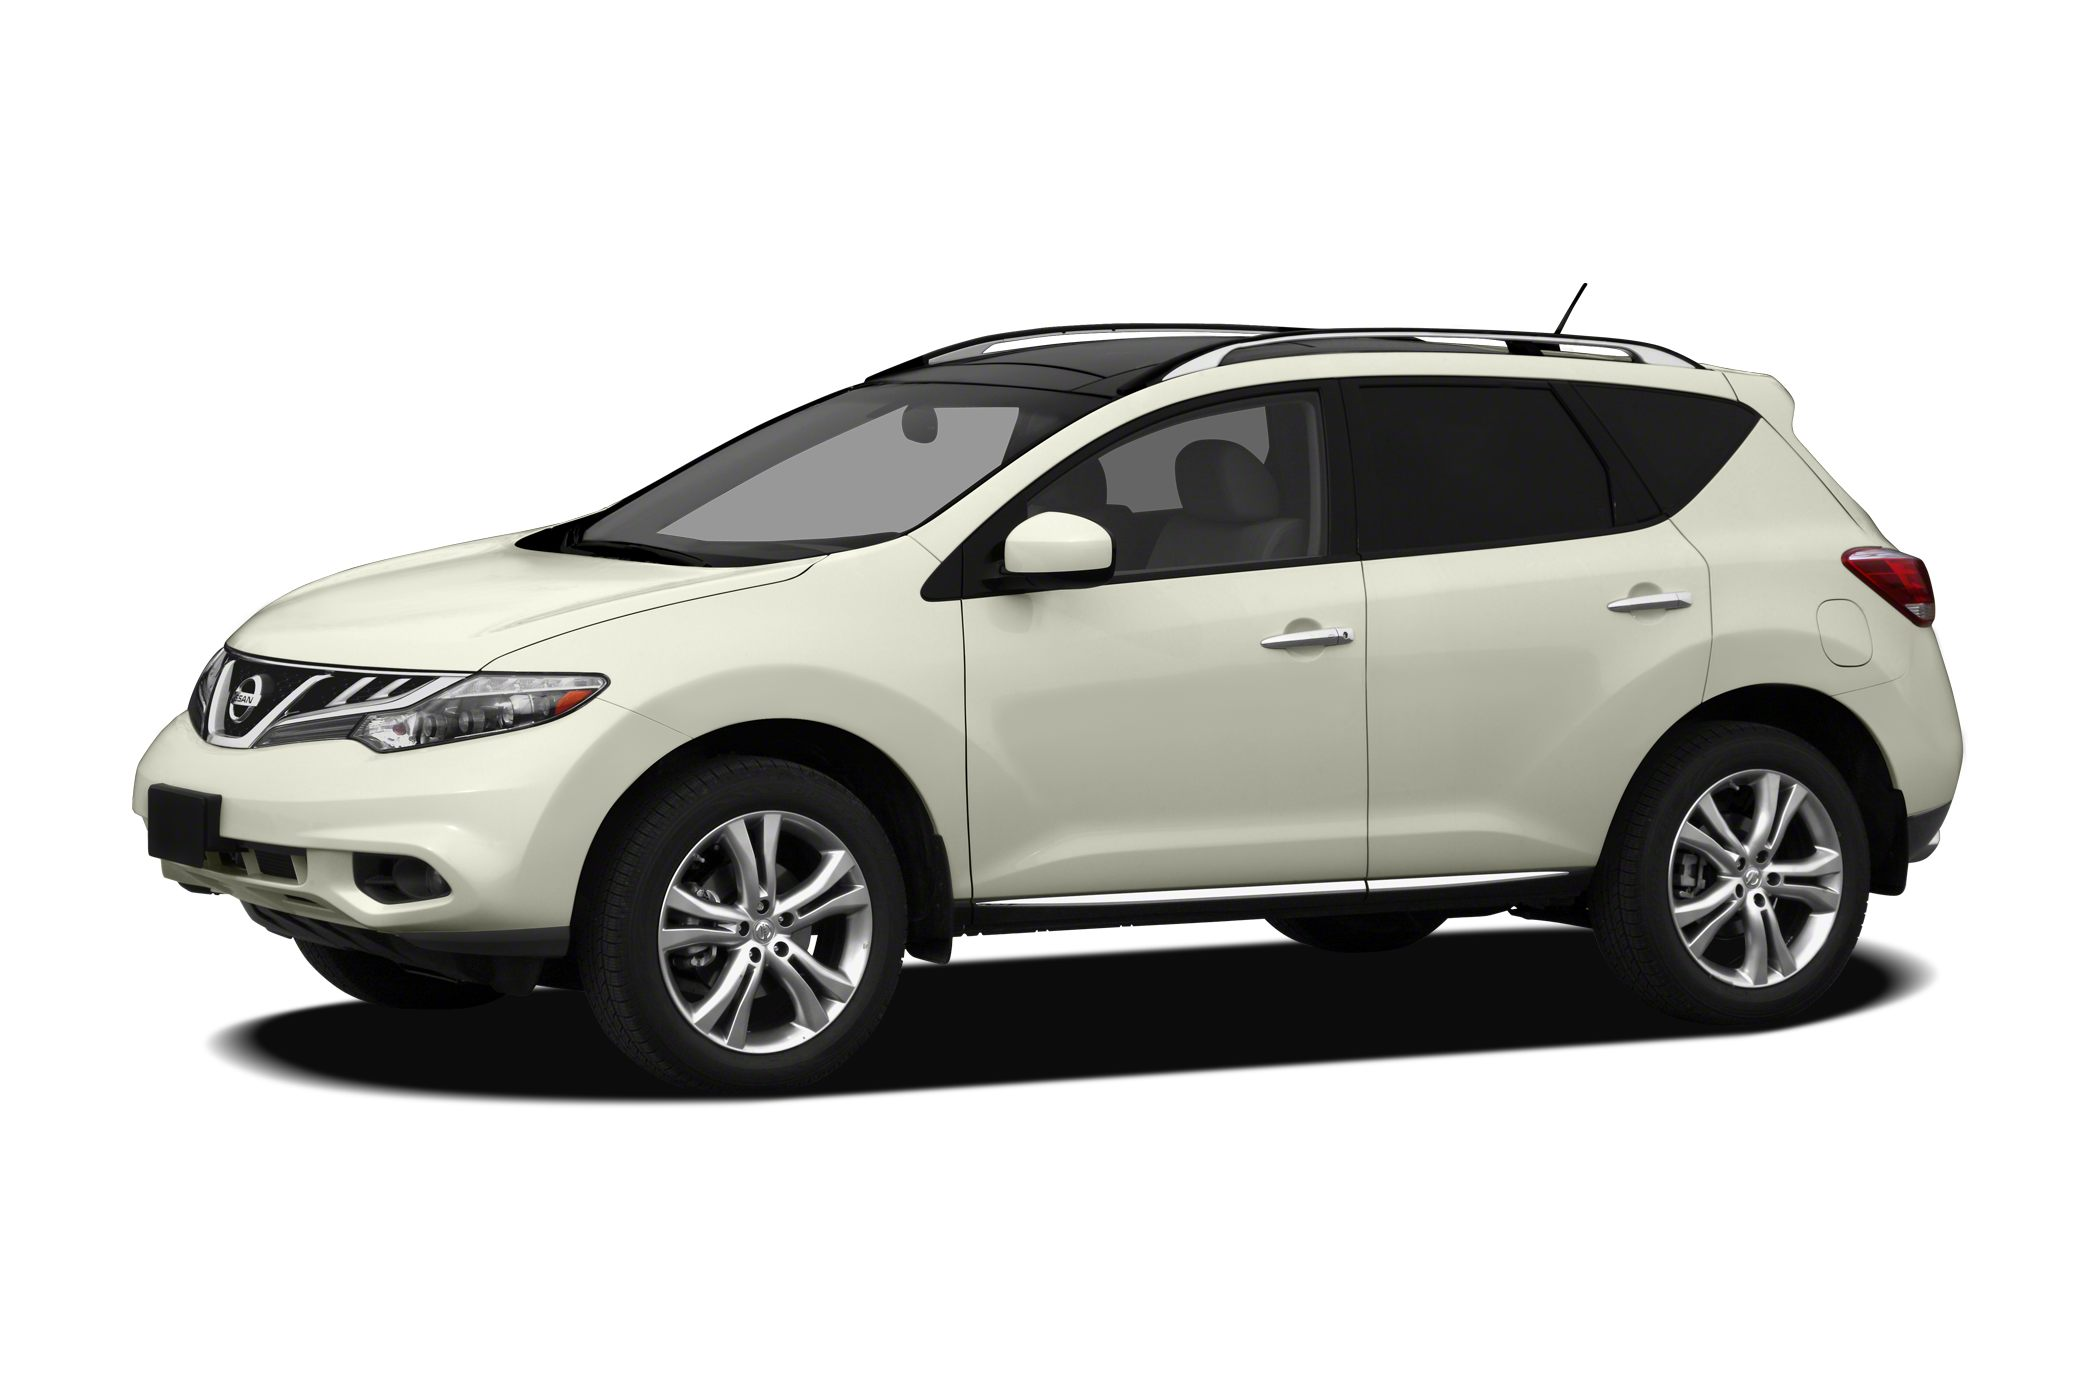 2012 Nissan Murano Information Diagram Of 2004 Engine